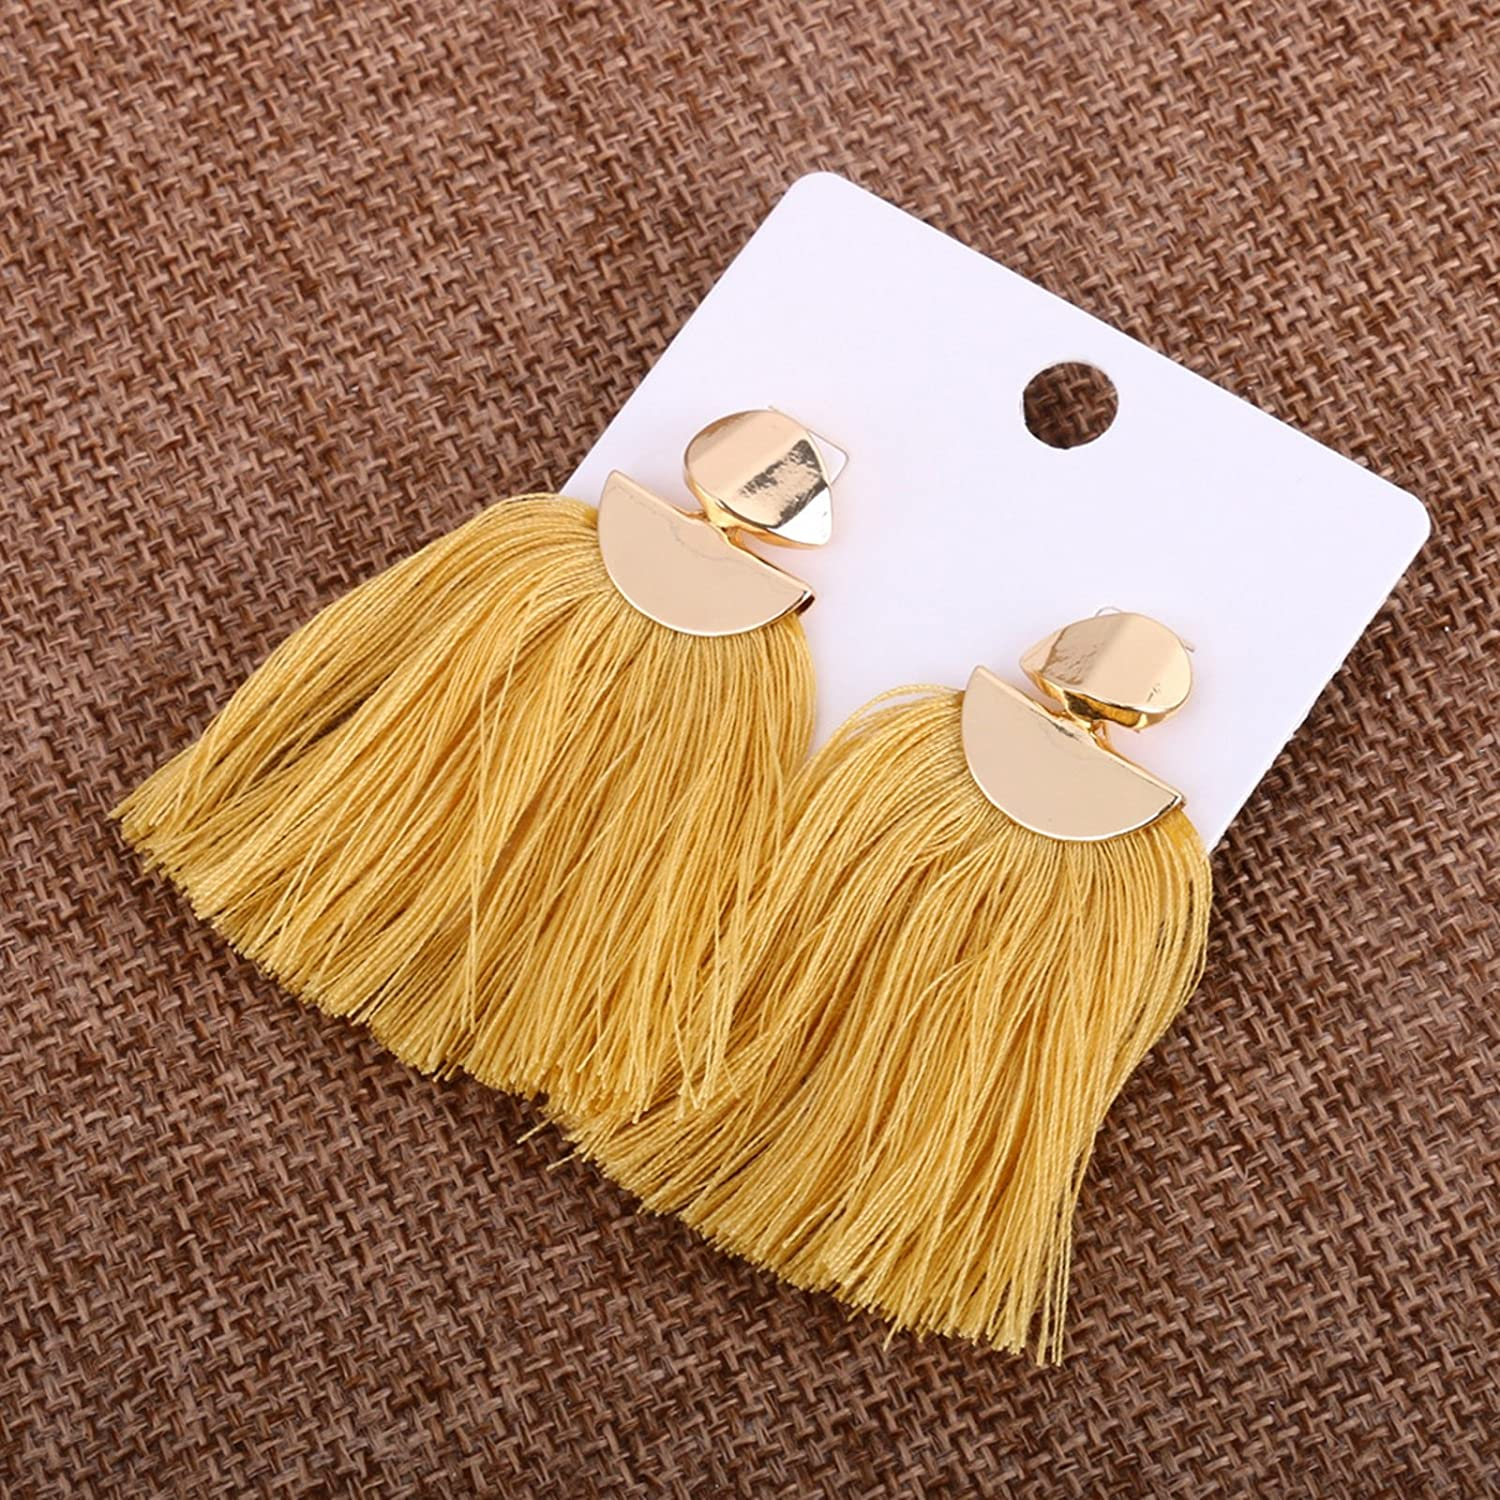 Bishilin Gold Plated Earrings for Women Sector Line Tassel Anniversary Party Earrings Yellow